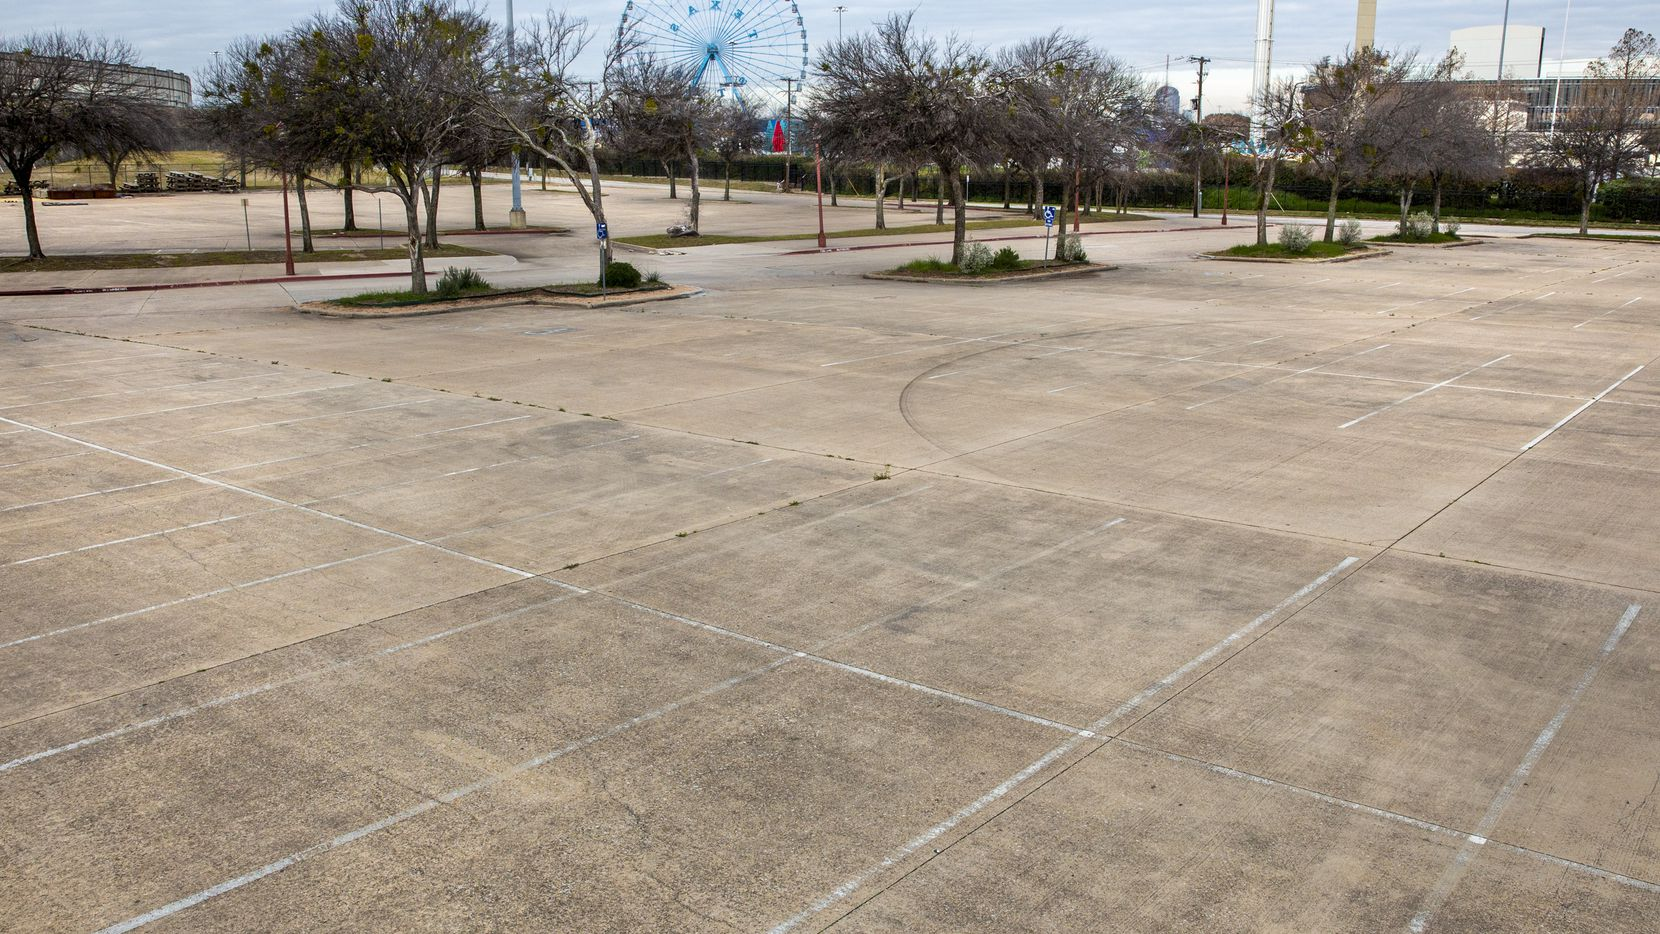 Parking lot 10 at Fair Park in Dallas. The lot, located along Fitzhugh Avenue and Exposition, is the proposed location for the Fair Park Neighborhood Park.